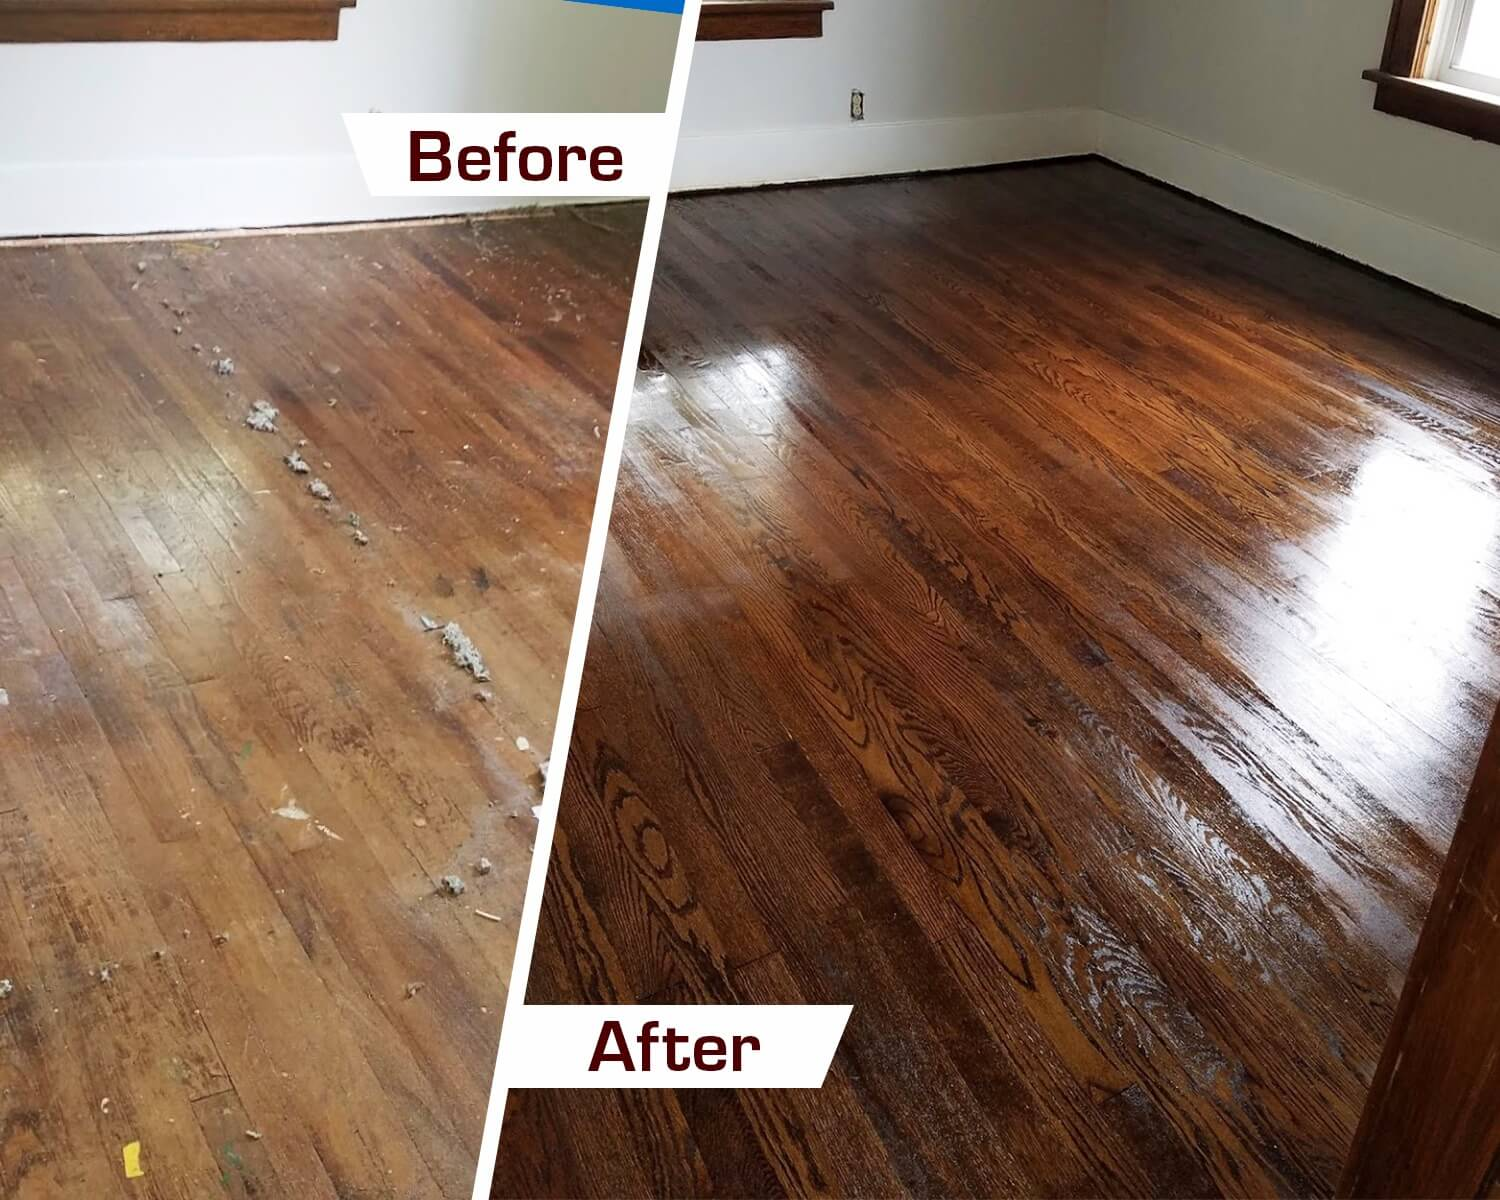 Before and after hardwood floor refinishing in orange county, CA